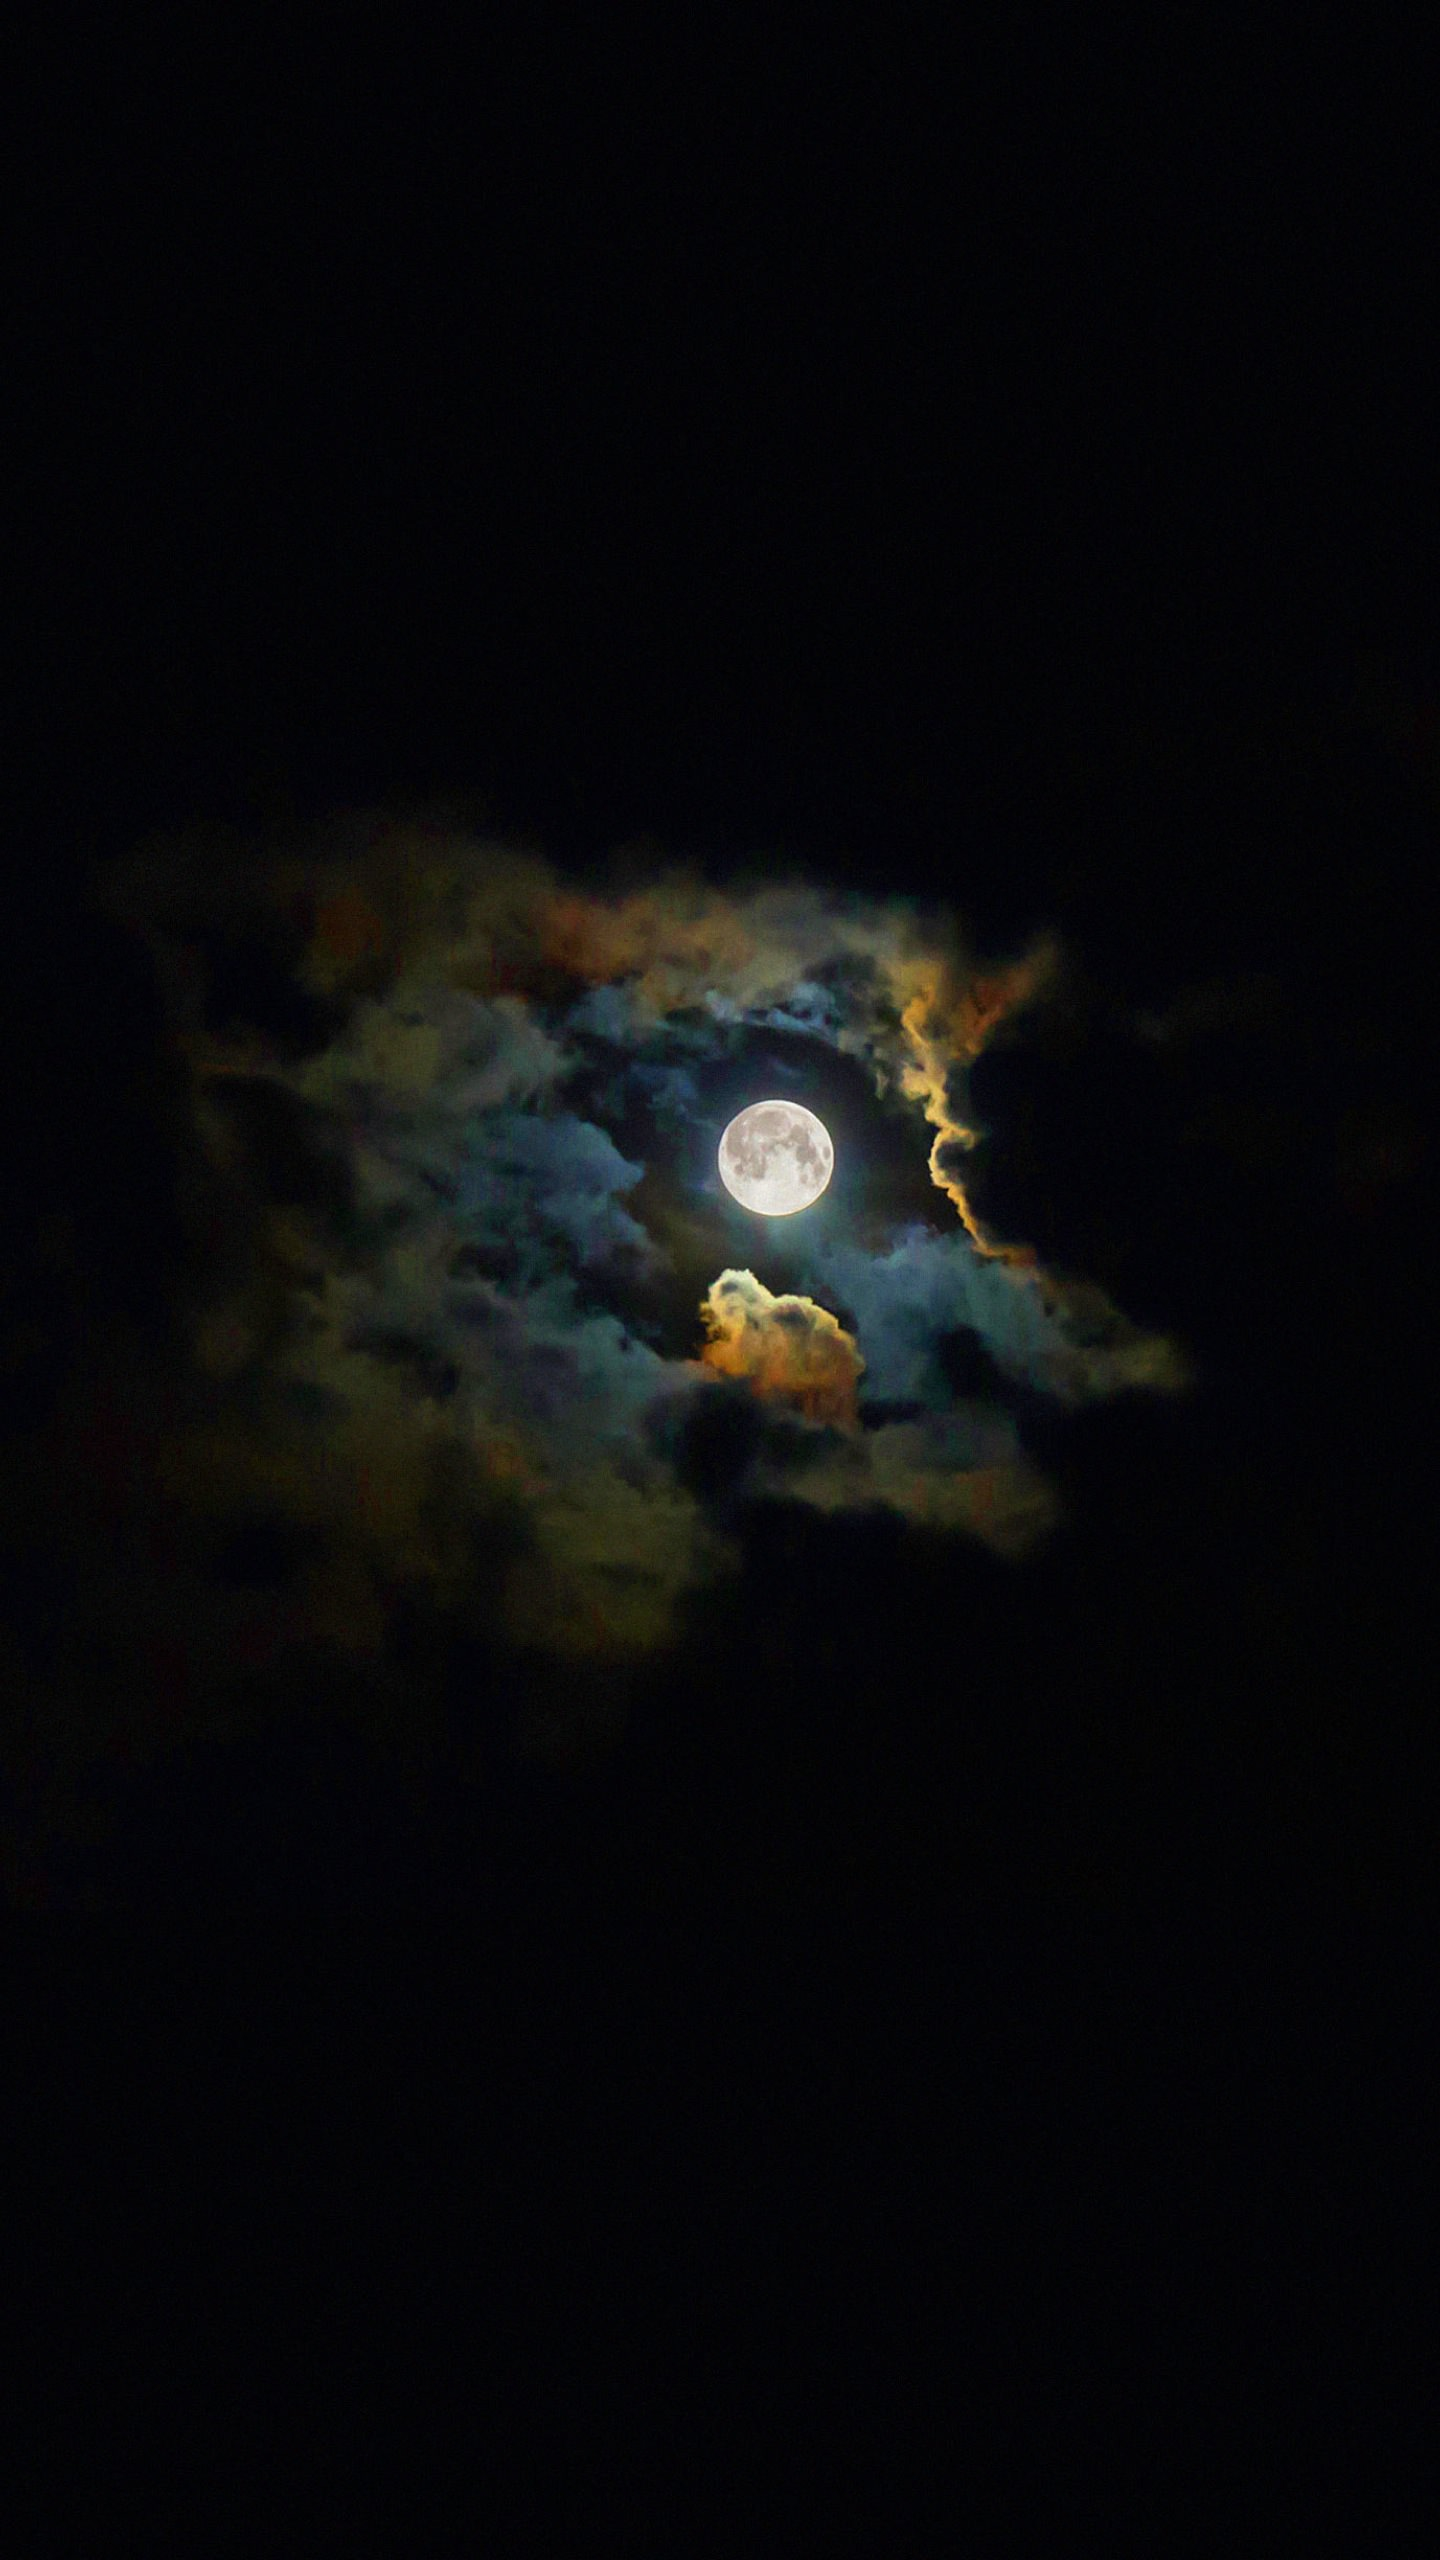 Red And White Car Wallpaper 1920x1080 Landscape Moon Shiny Black Wallpaper Sc Smartphone